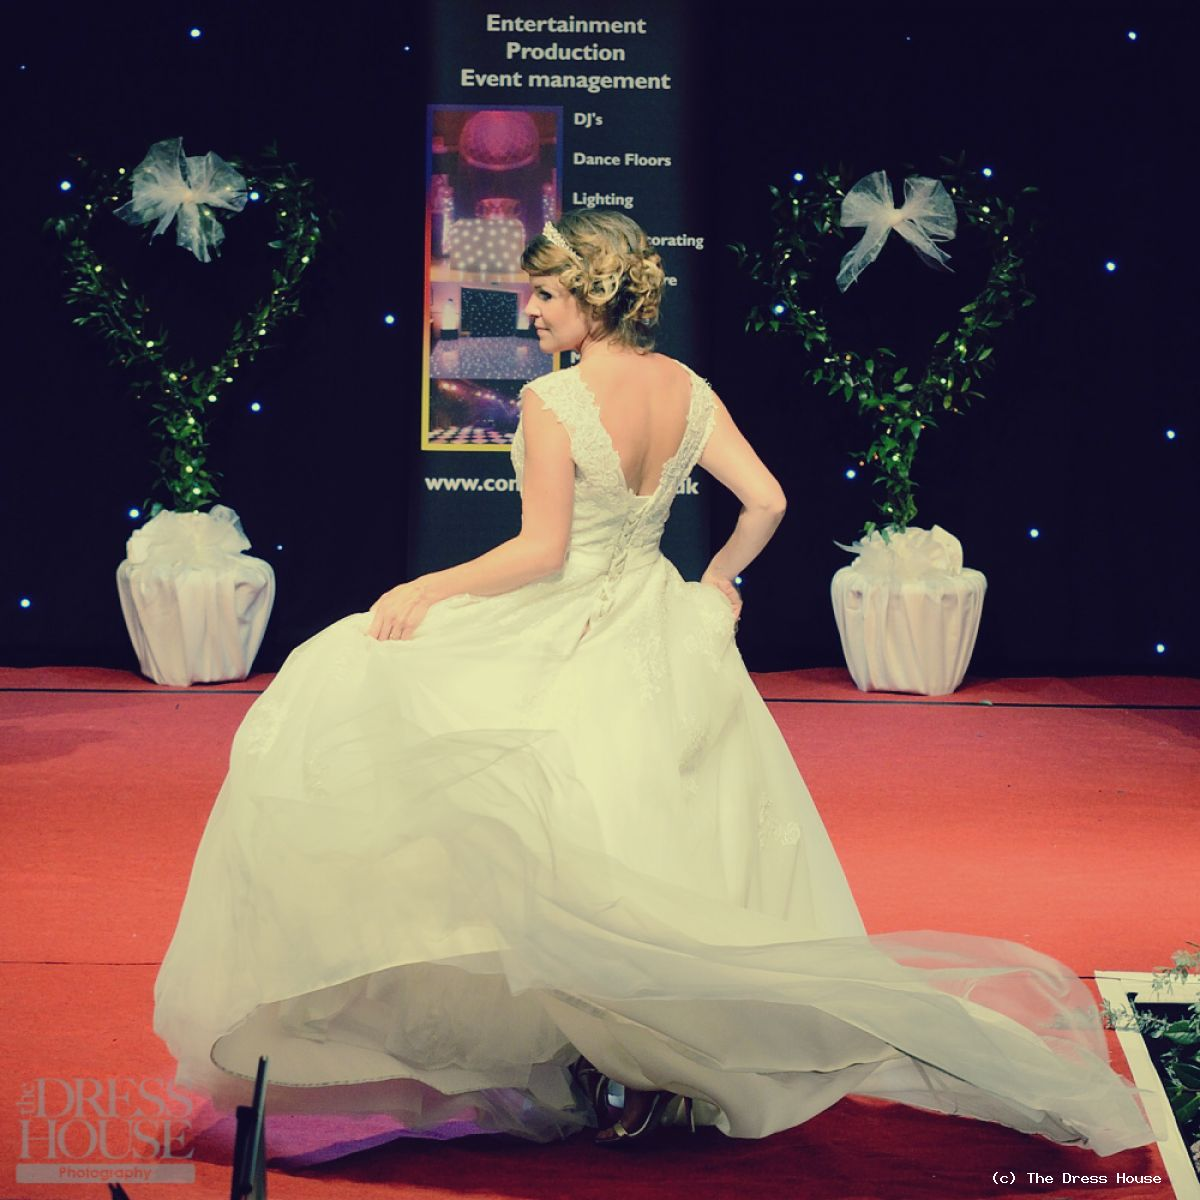 Catwalk Bridalwear Photos From St Albans Show | News | The Dress House